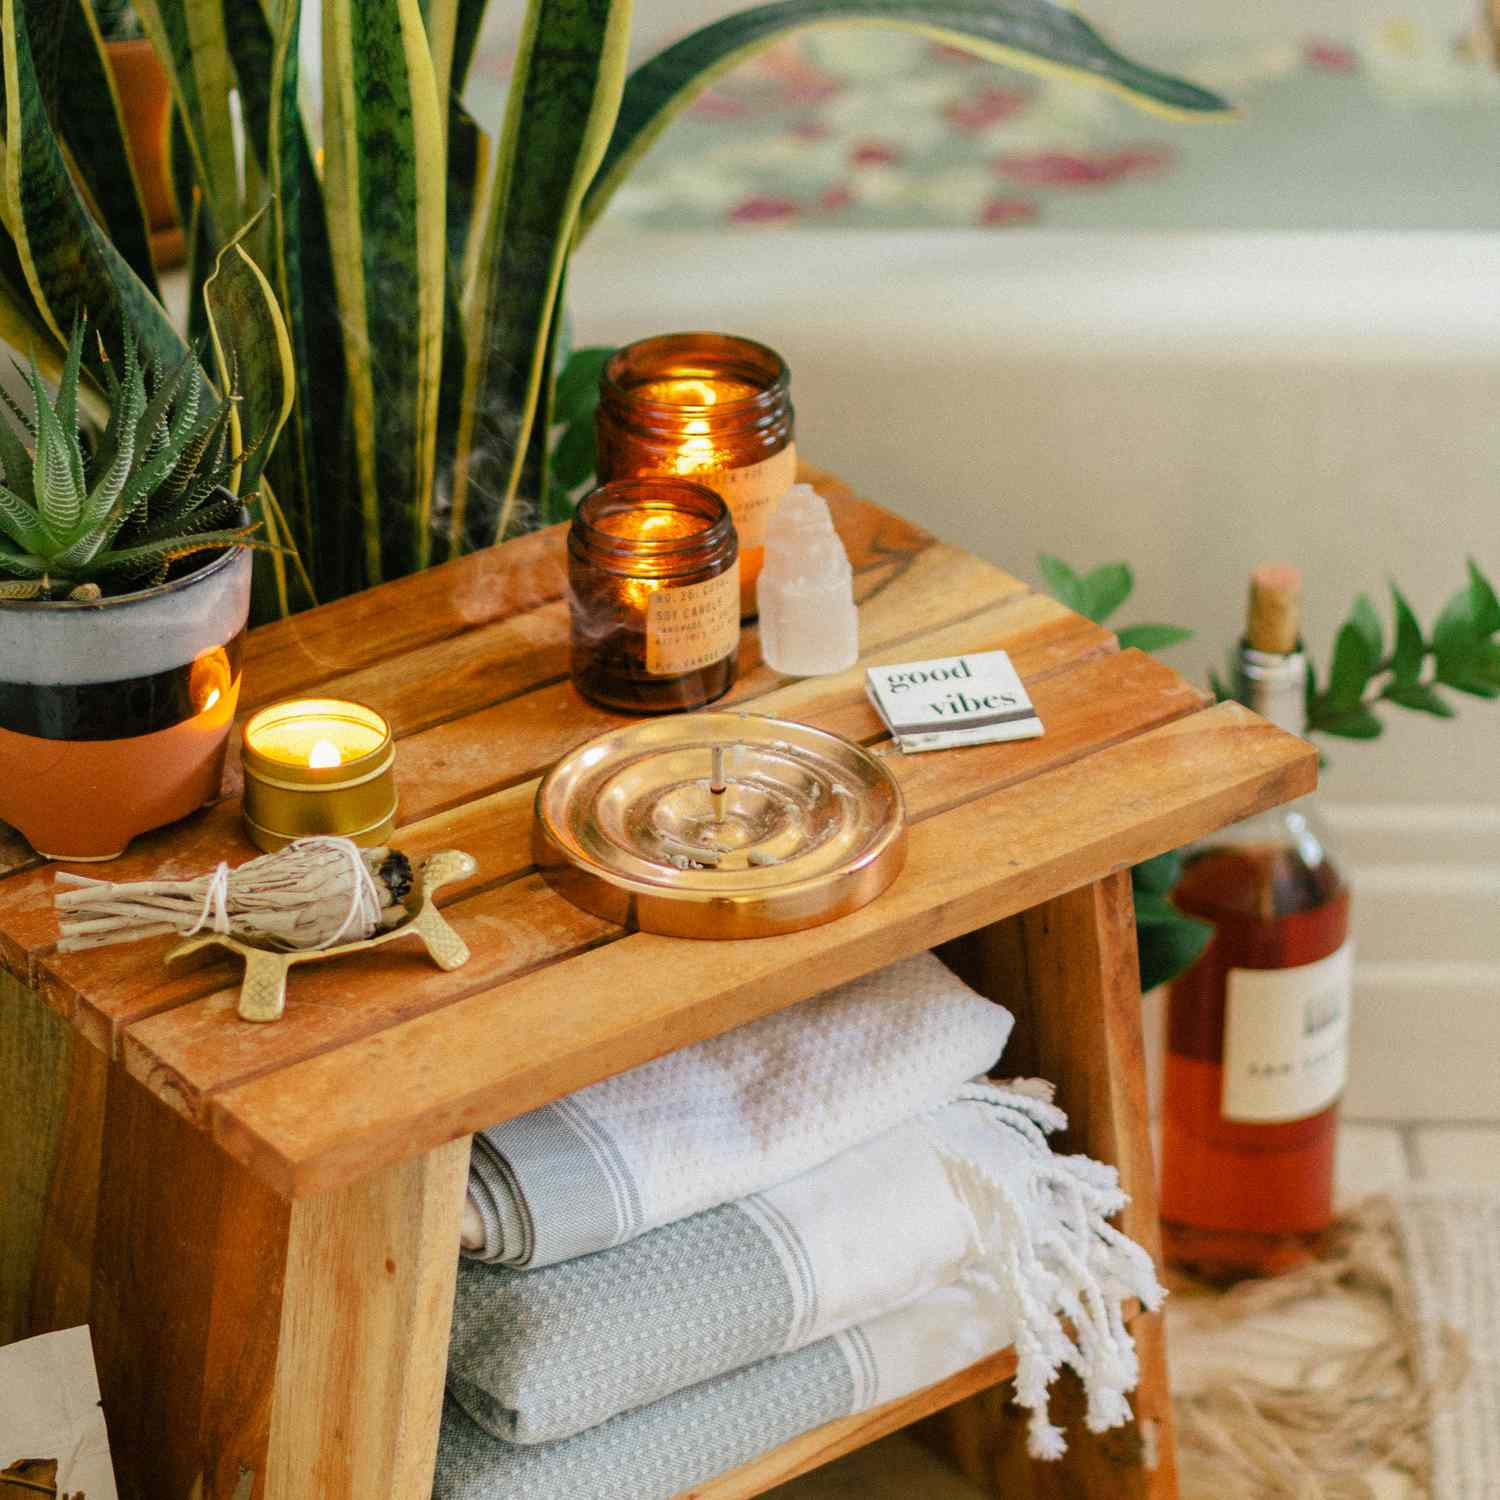 Boho styled bath table with candles, plants, and incense